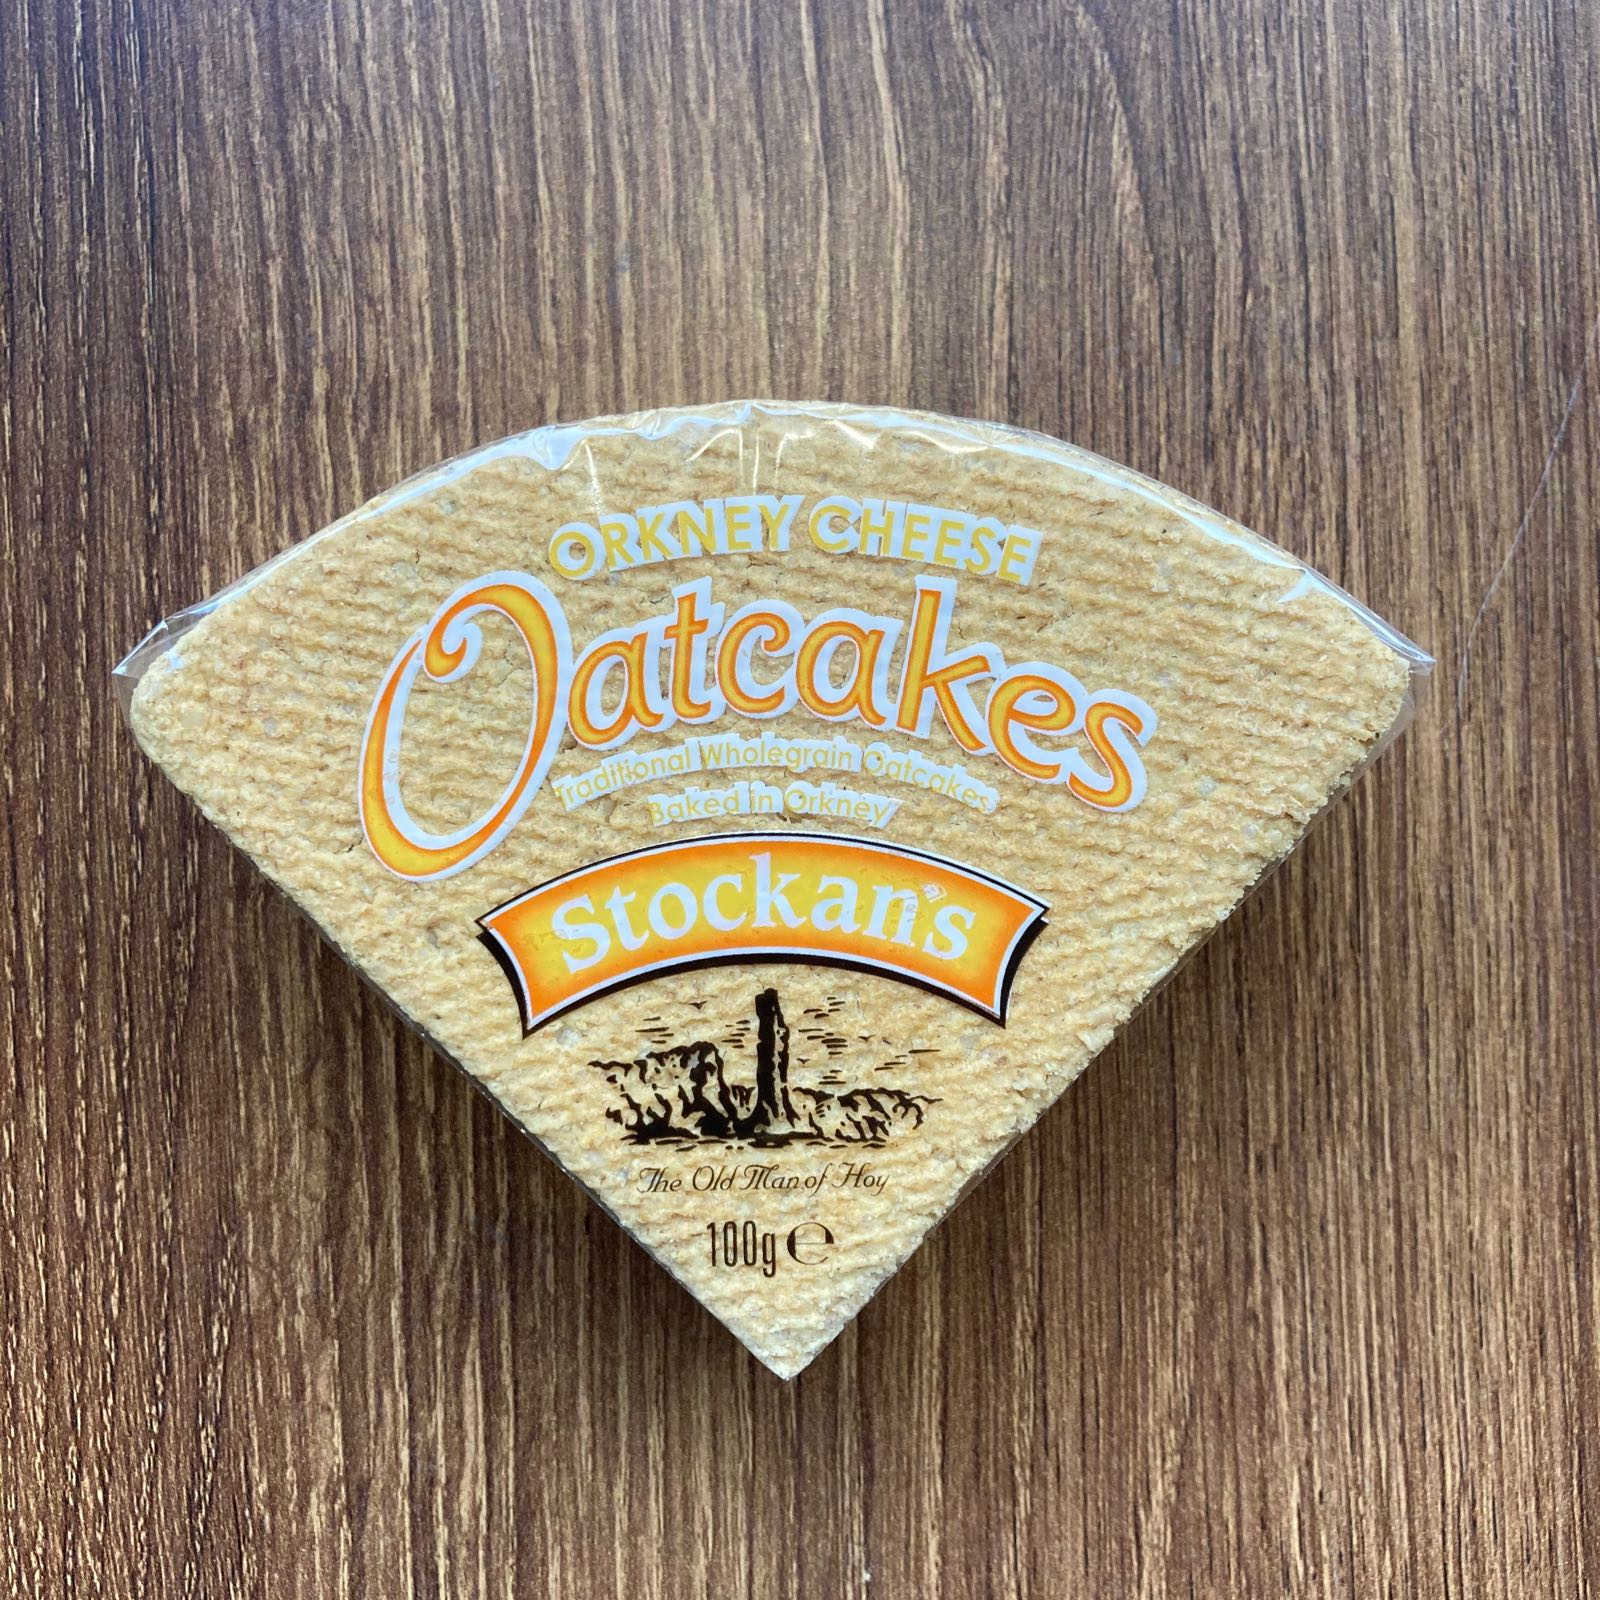 Stockan's Orkney Cheese Oatcakes